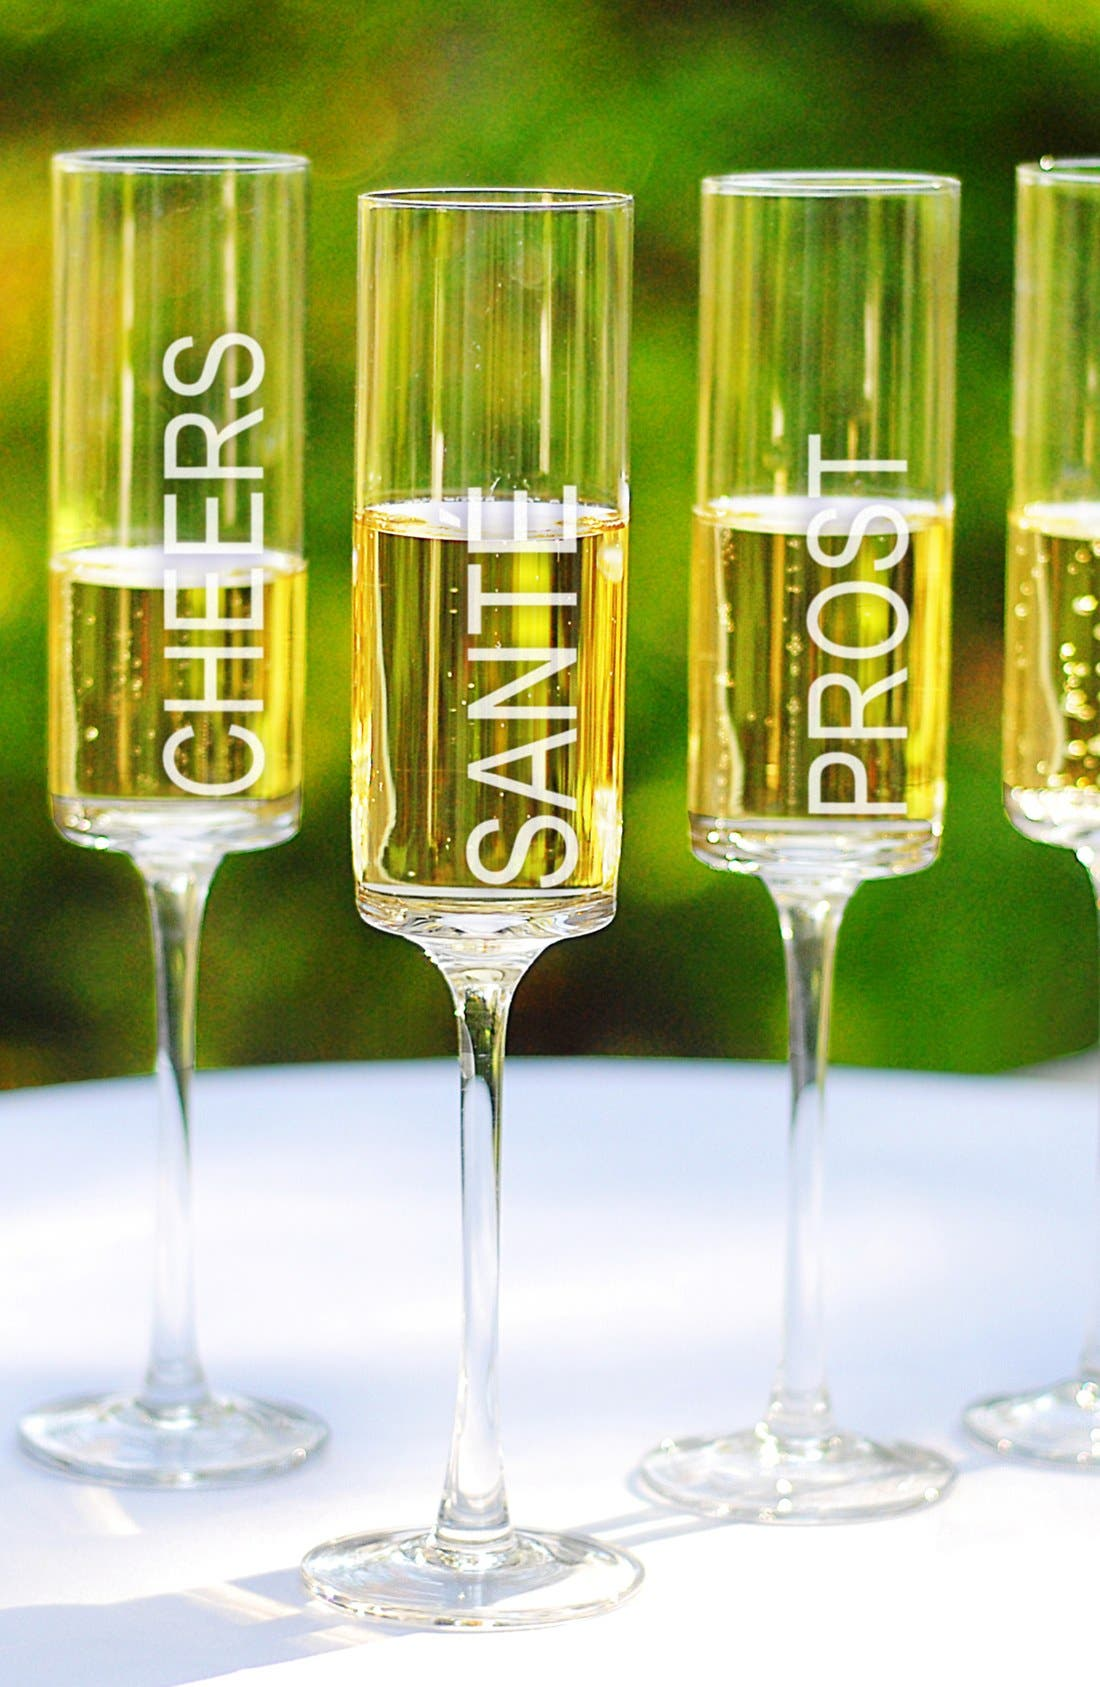 Alternate Image 1 Selected - Cathy's Concepts 'Cheers!' Contemporary Champagne Flutes (Set of 4)